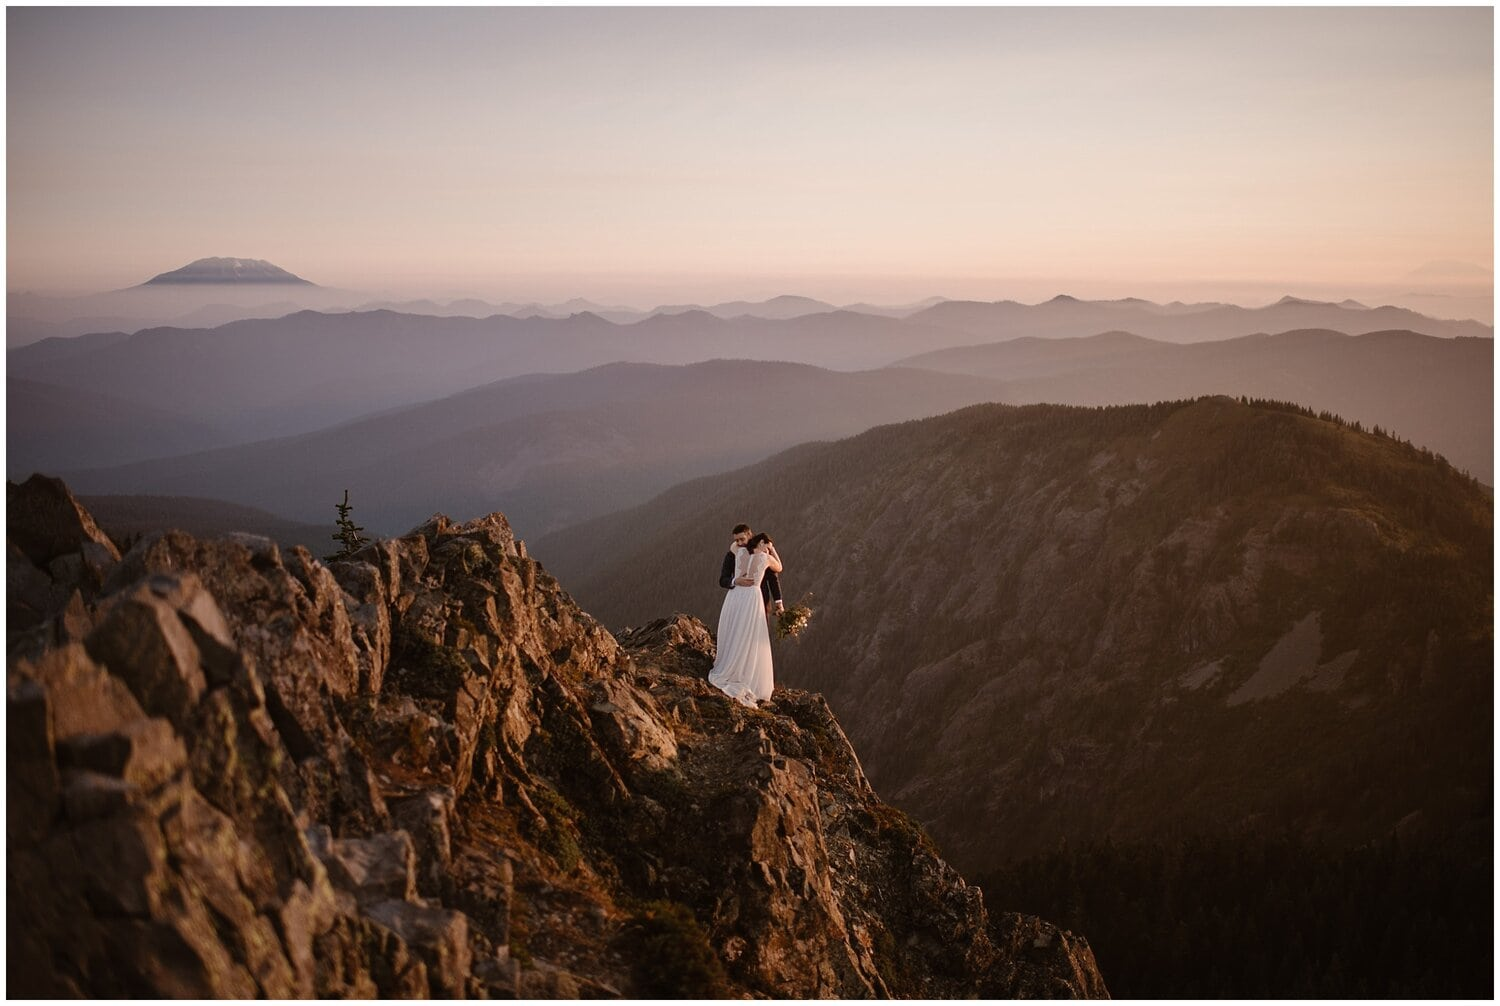 Bride and groom stand on a mountain on their wedding day.